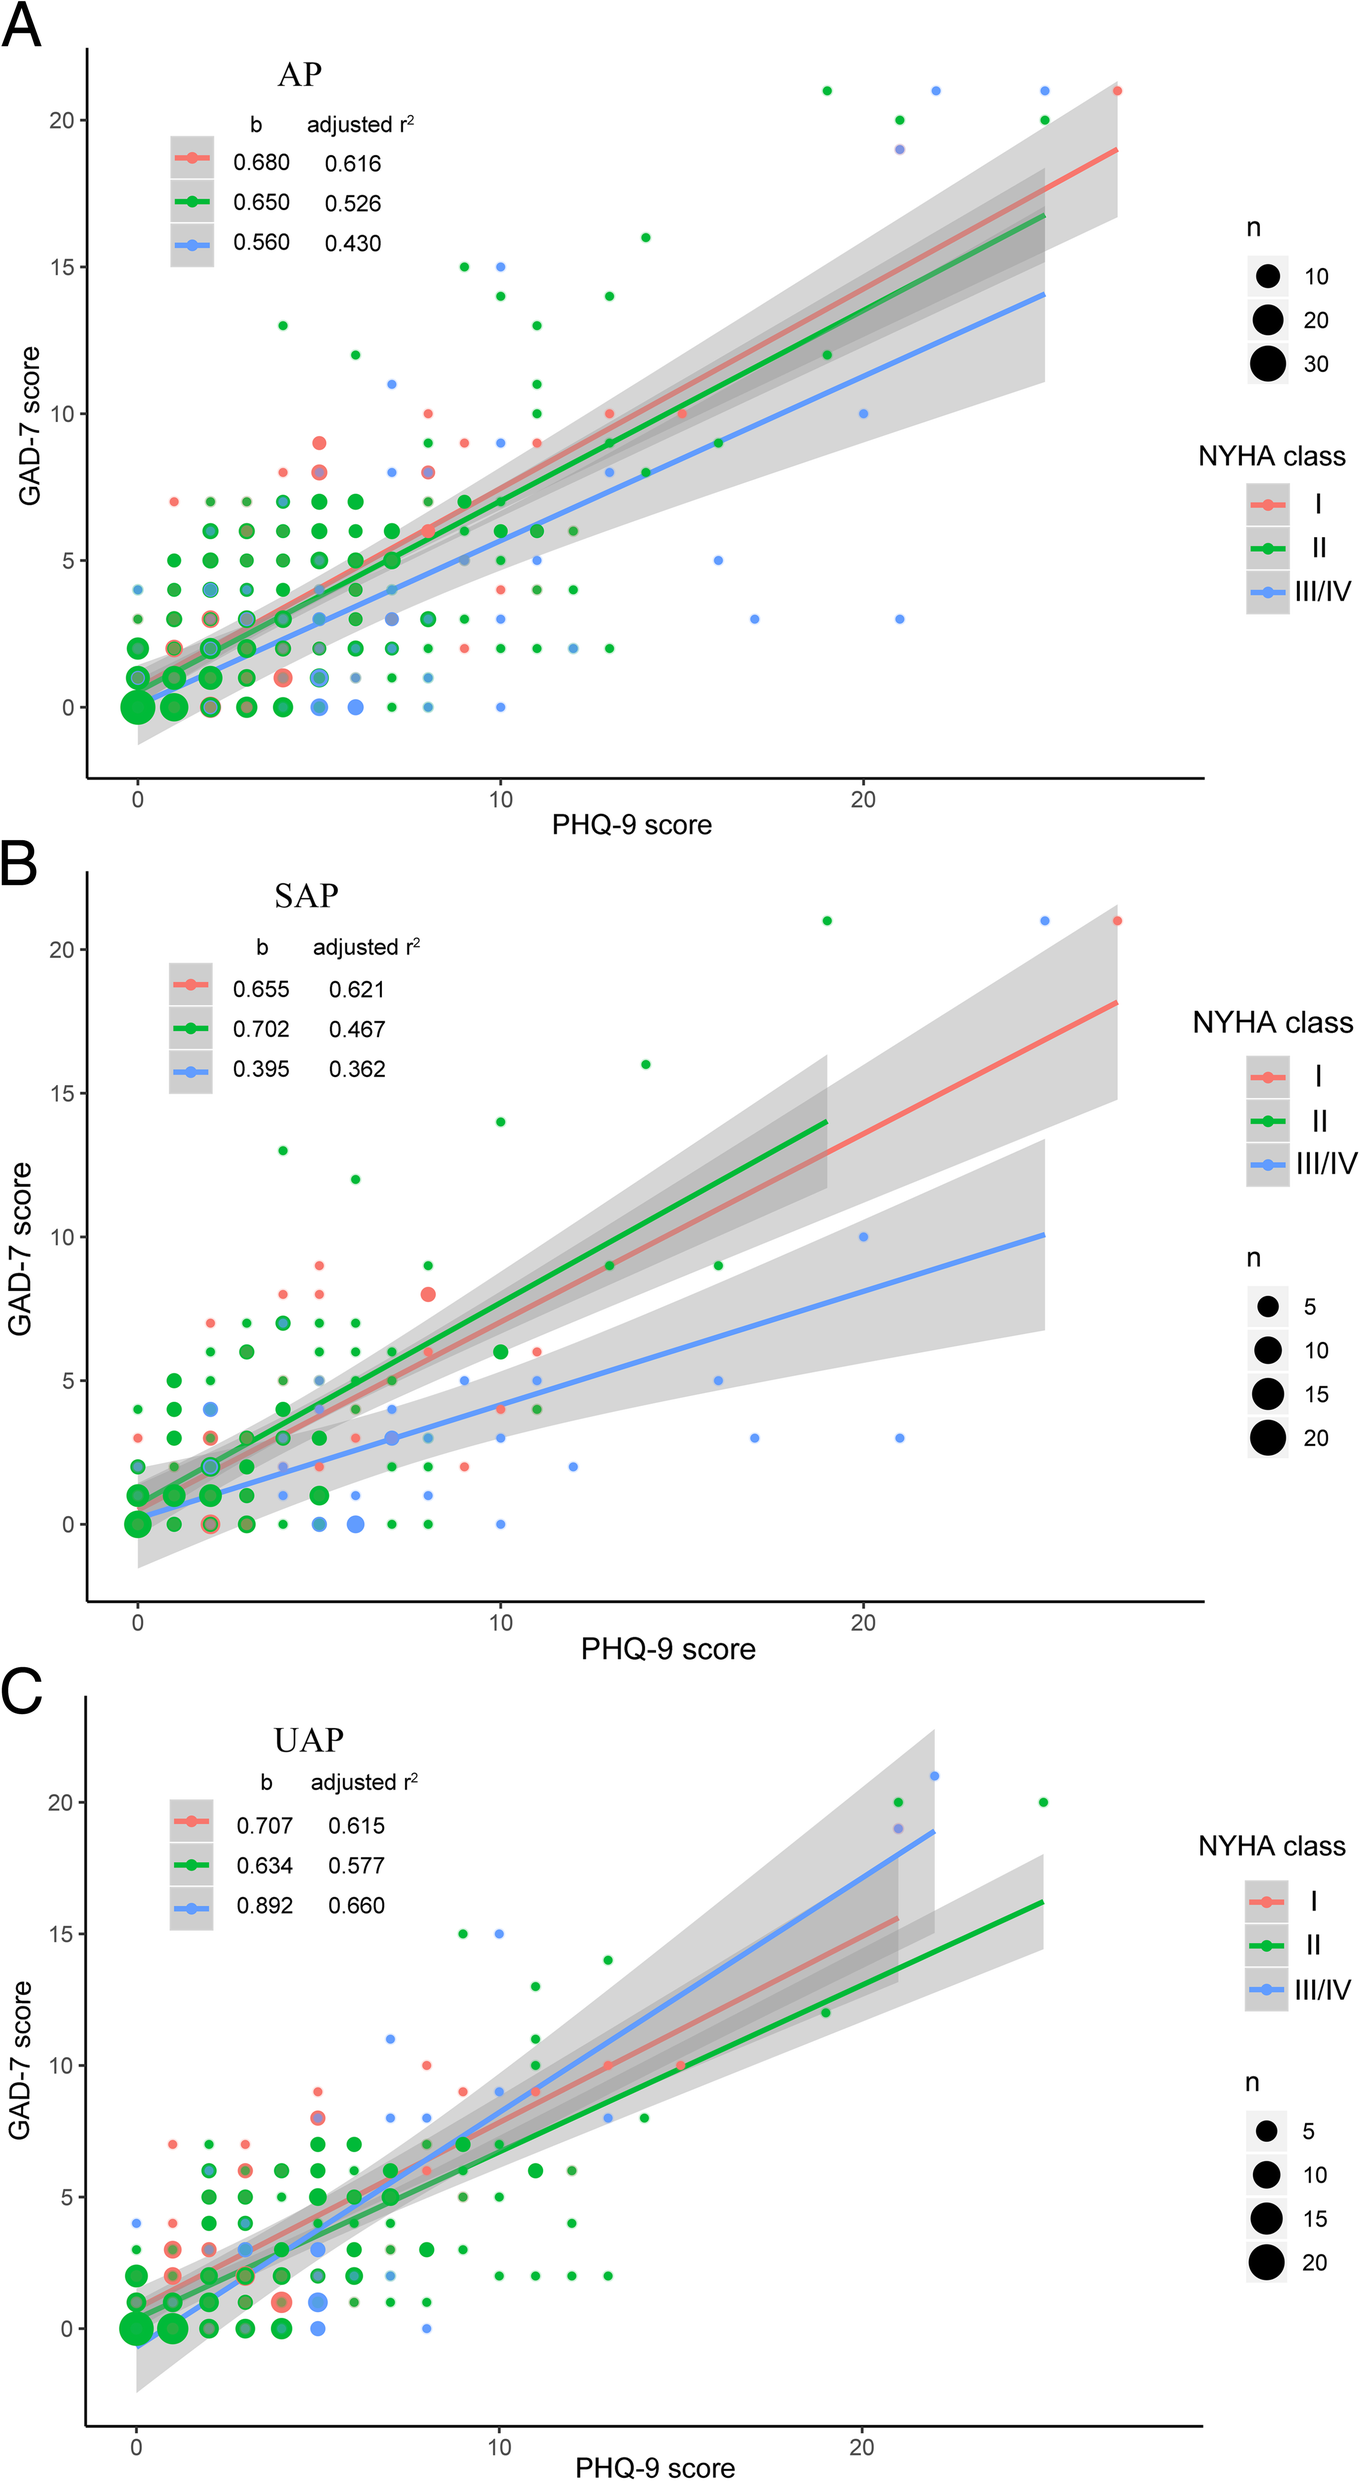 Associations of mood symptoms with NYHA functional classes in angina